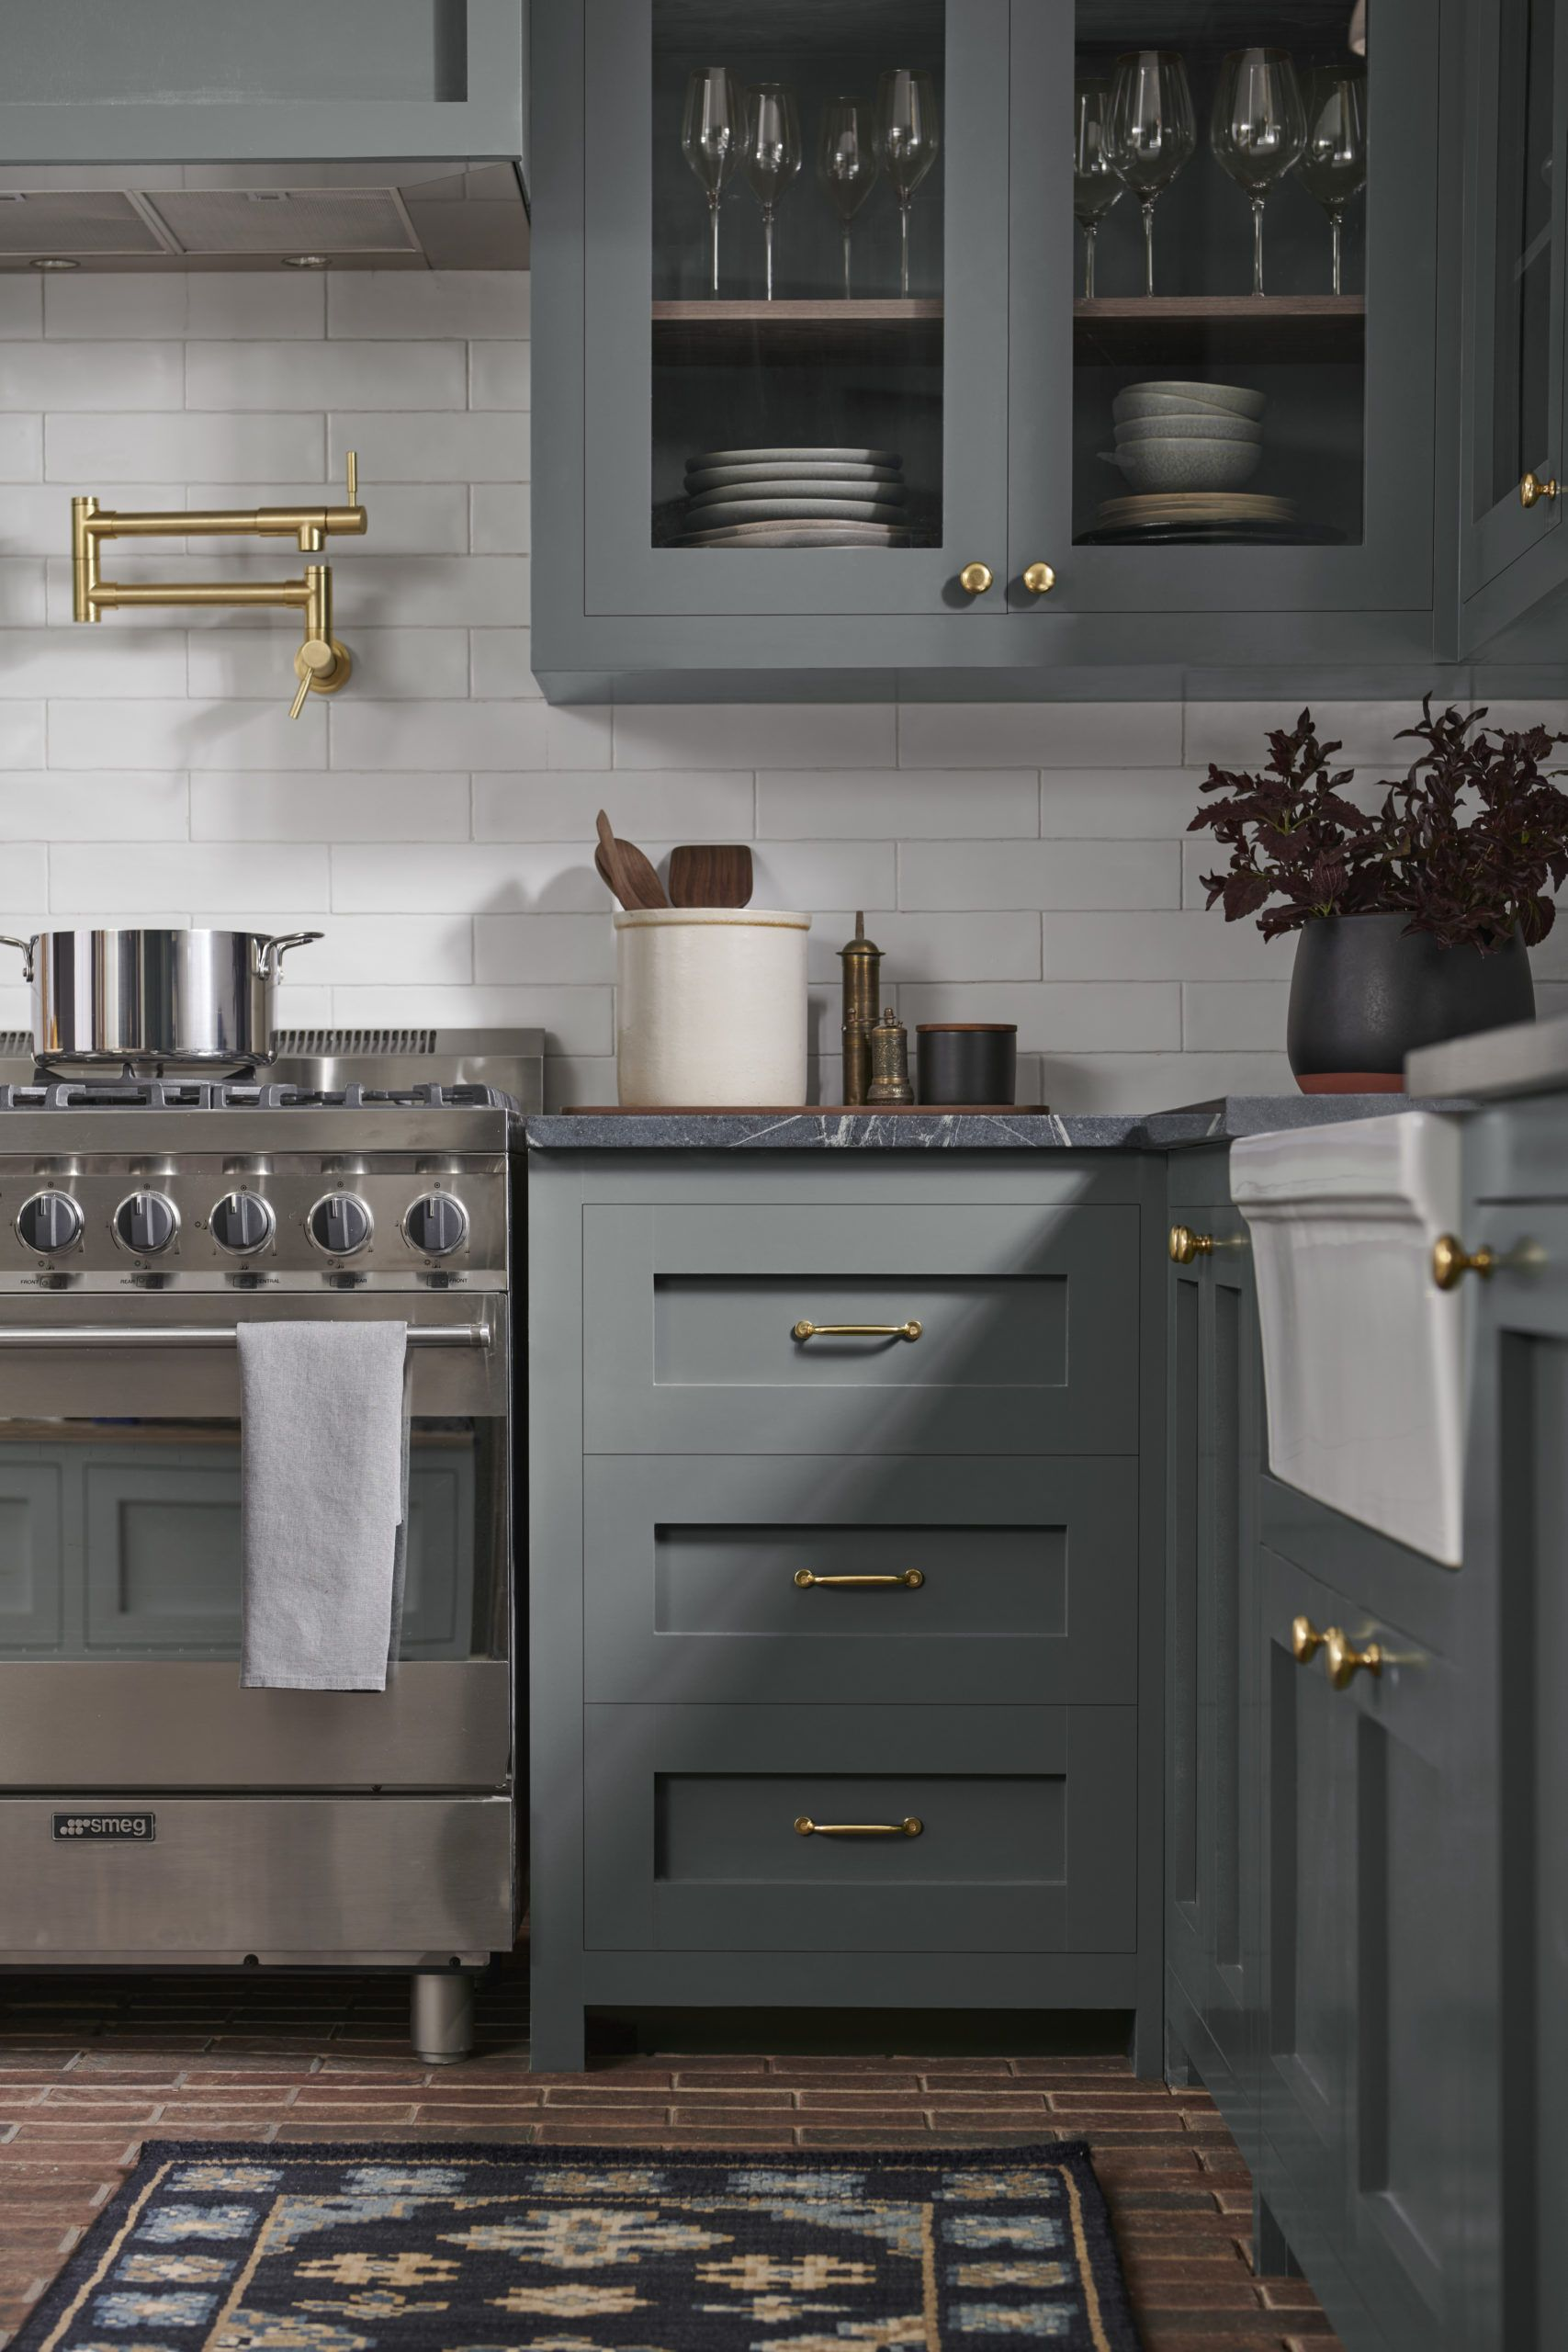 3 Kitchen Trends We Re Loving In 2020 Tinted By Sherwin Williams In 2020 Kitchen Trends Kitchen Remodel Small Kitchen Refresh